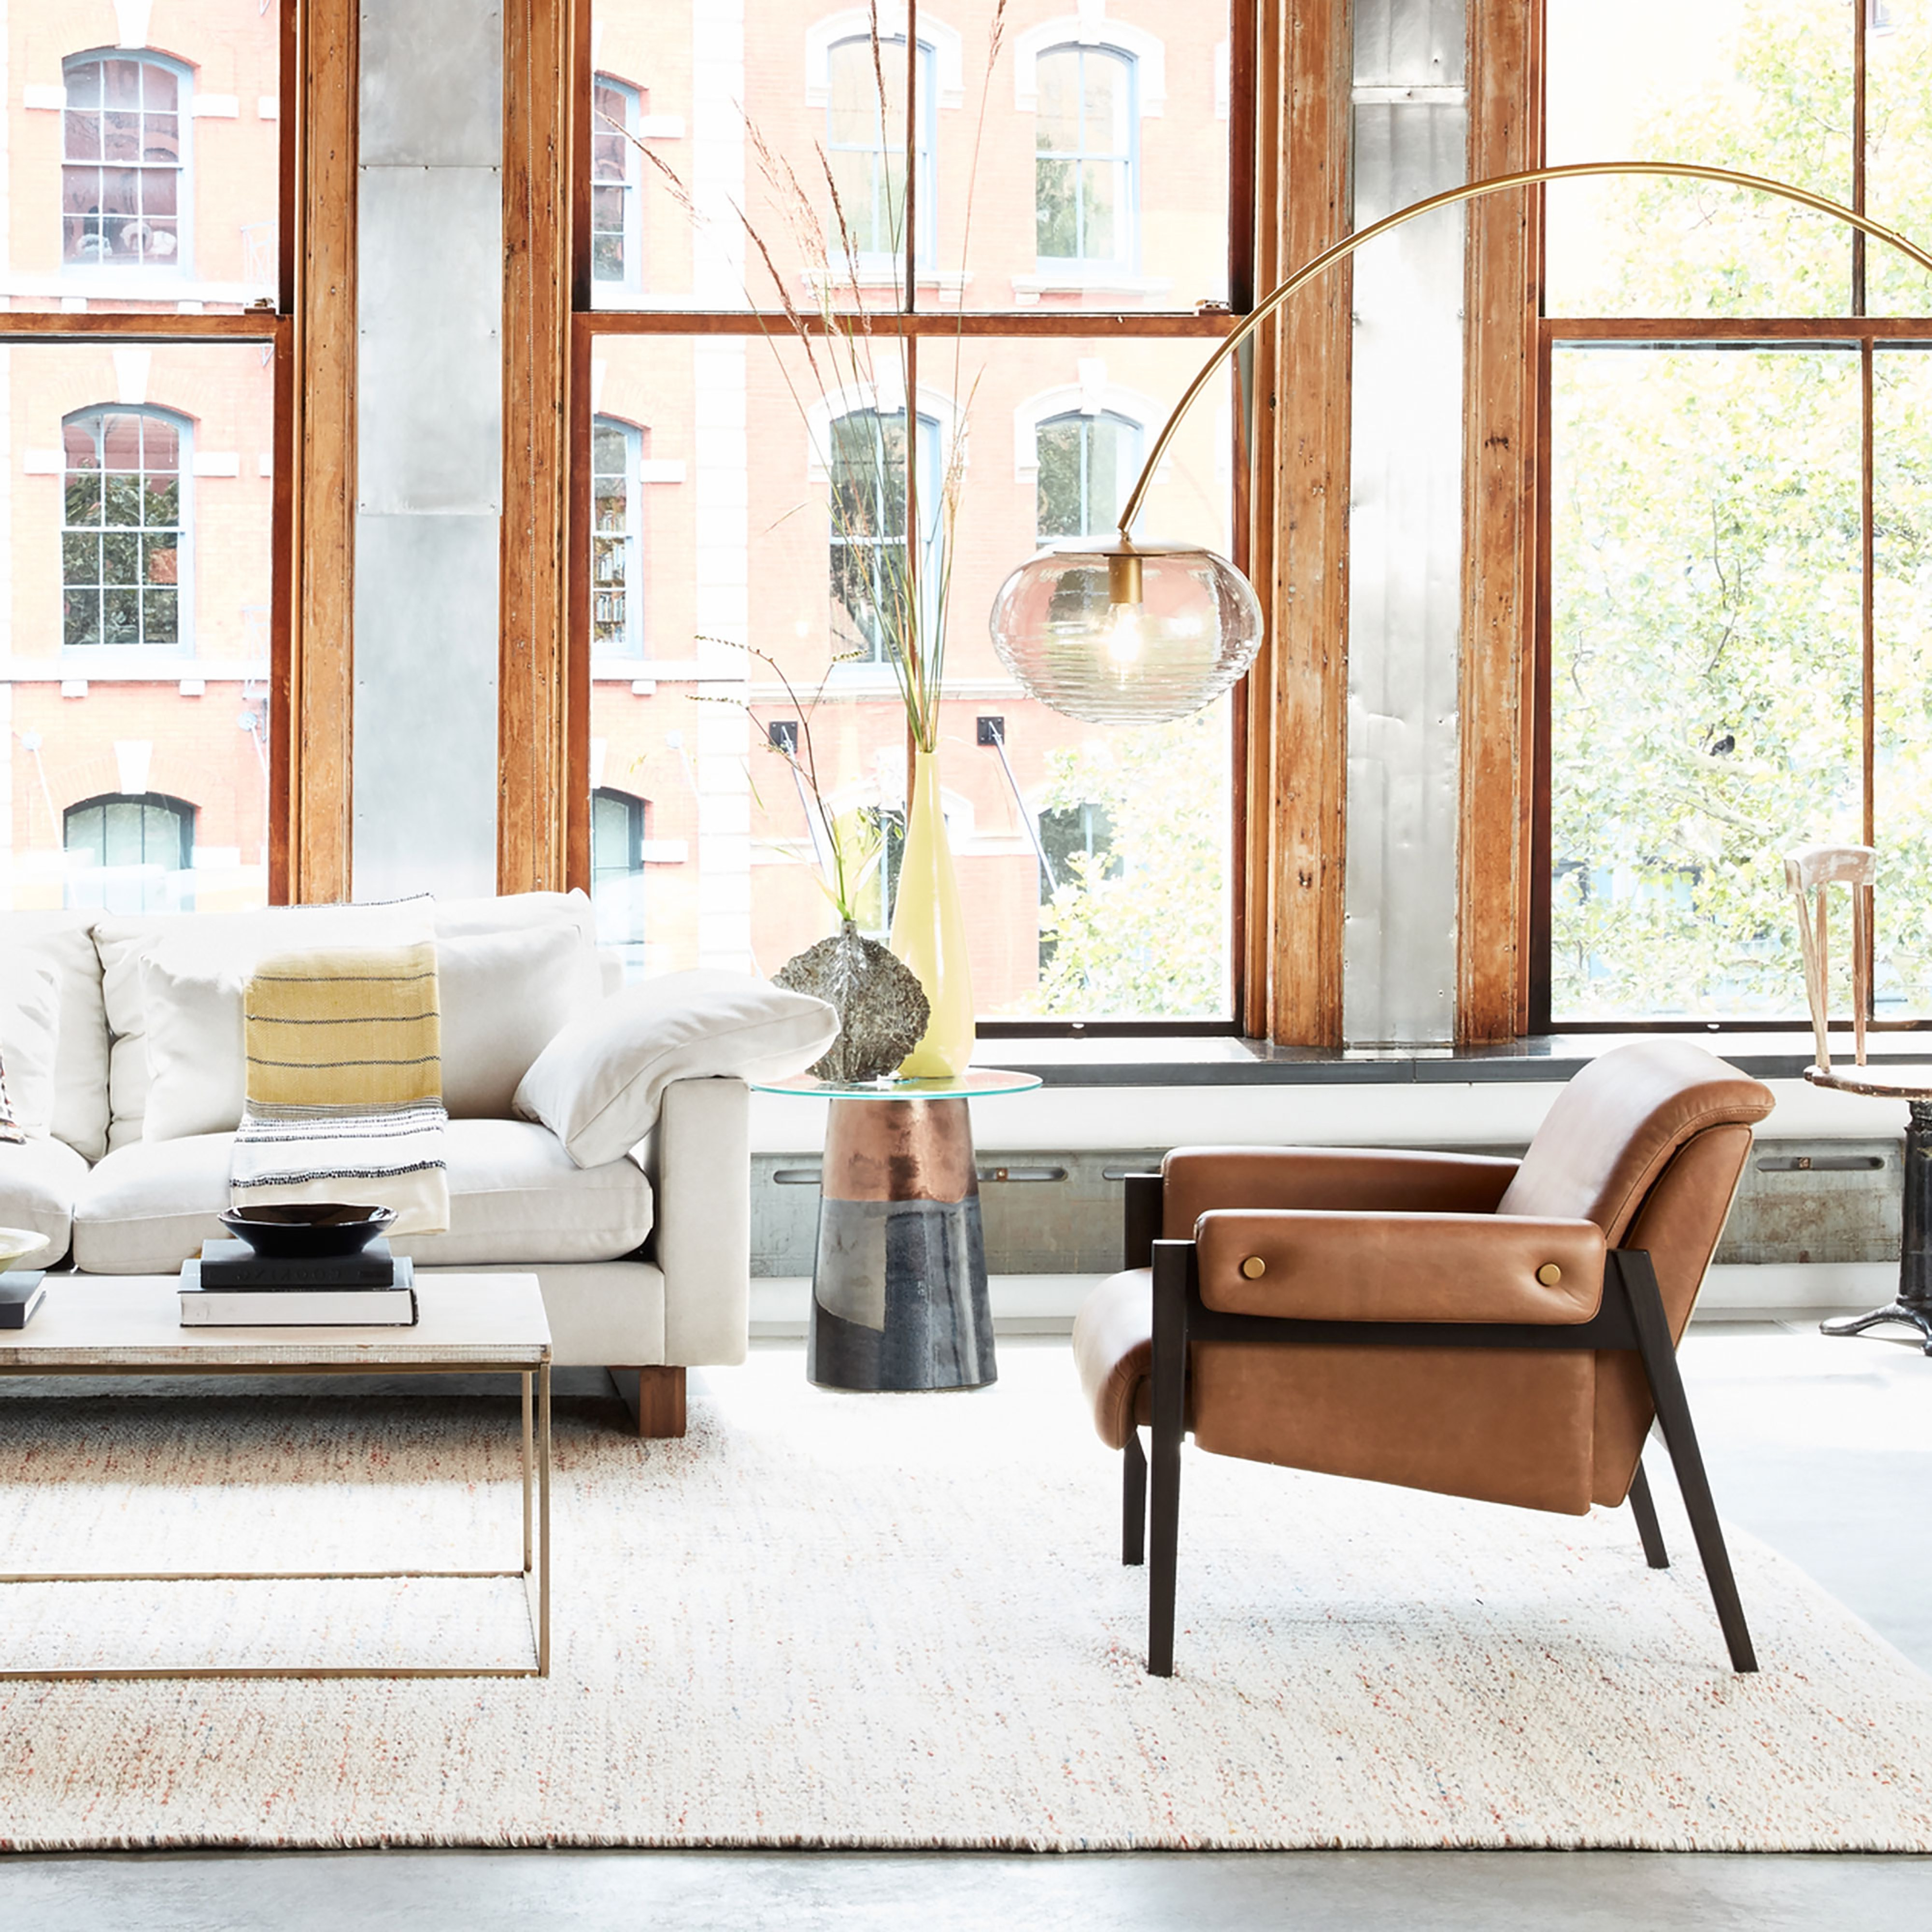 Elm Sofa Chairs Throughout Widely Used West Elm President Alex Bellos Discusses The Future Of The Company (View 10 of 20)